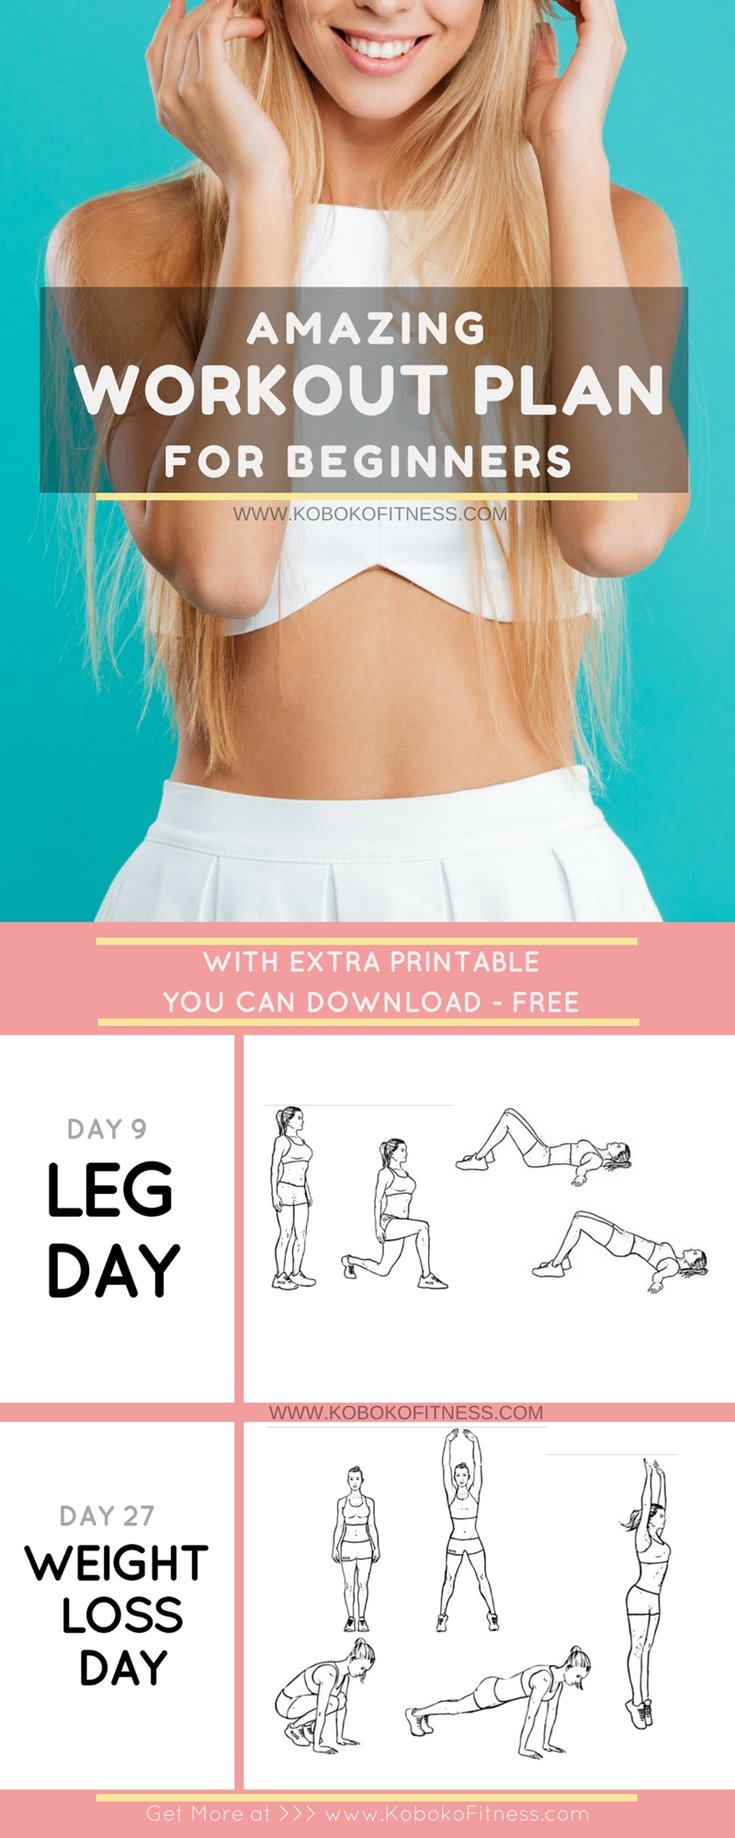 30 Day Workout Plan for Beginners (+ Easy Free Printable) - Koboko